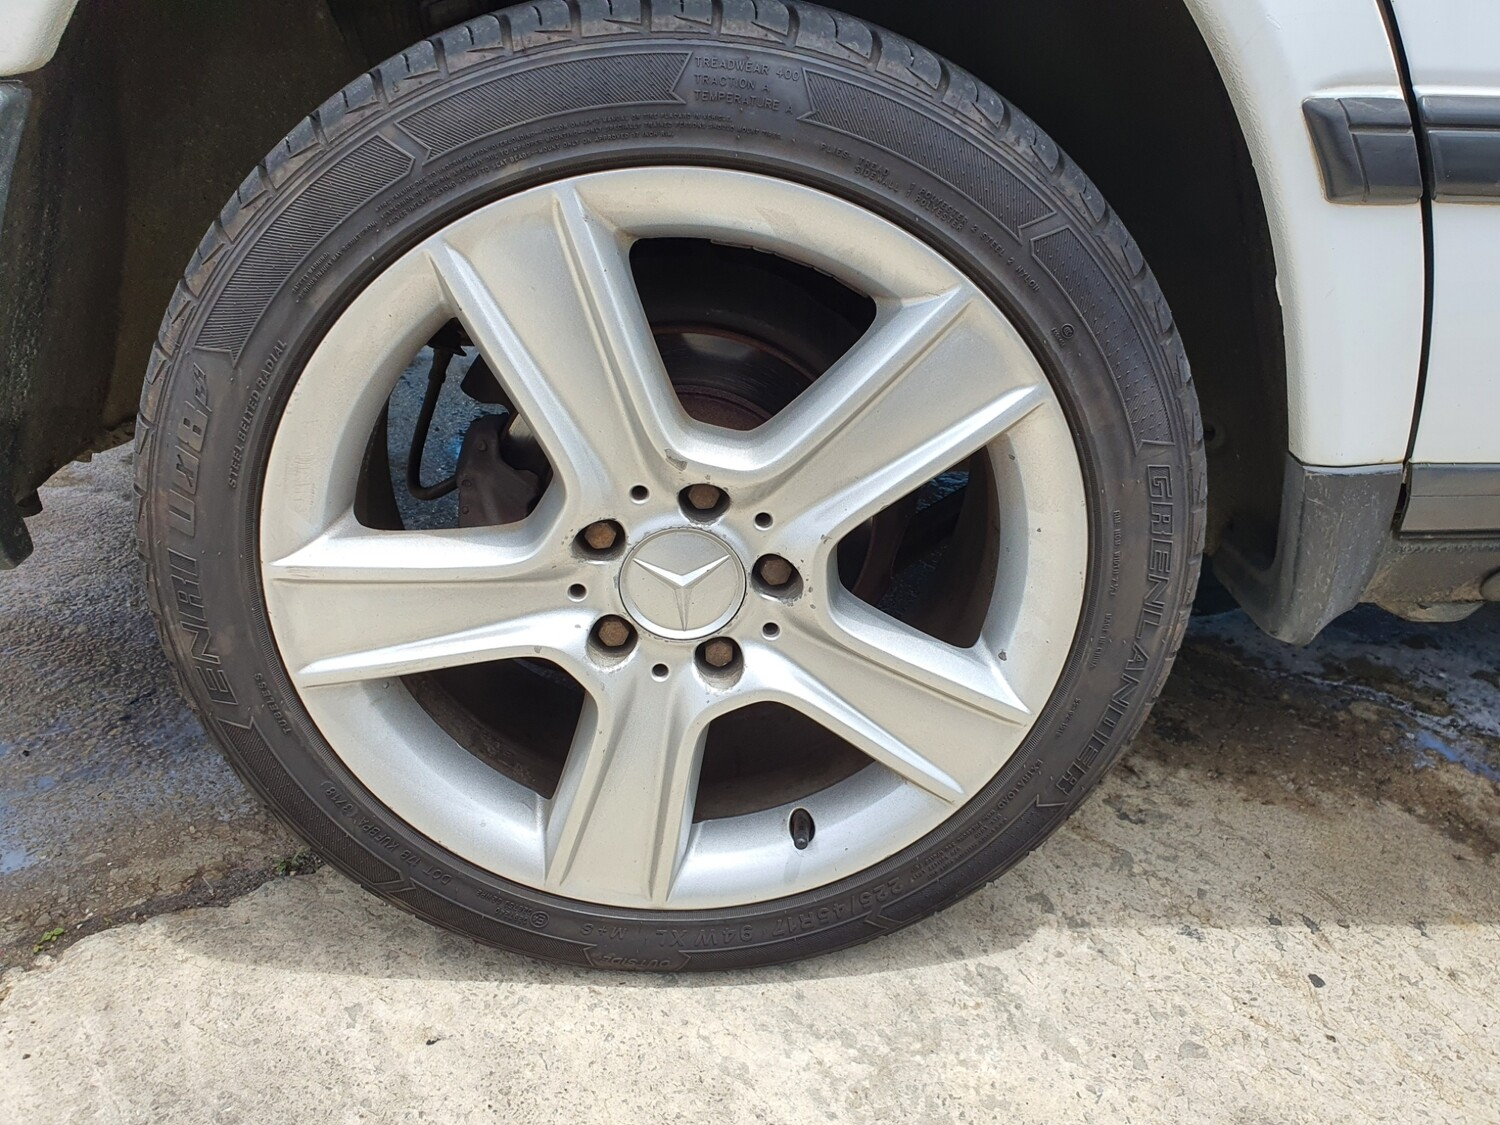 Mercedes-Benz 17 Inch Rims With 225/45R17 Tyres